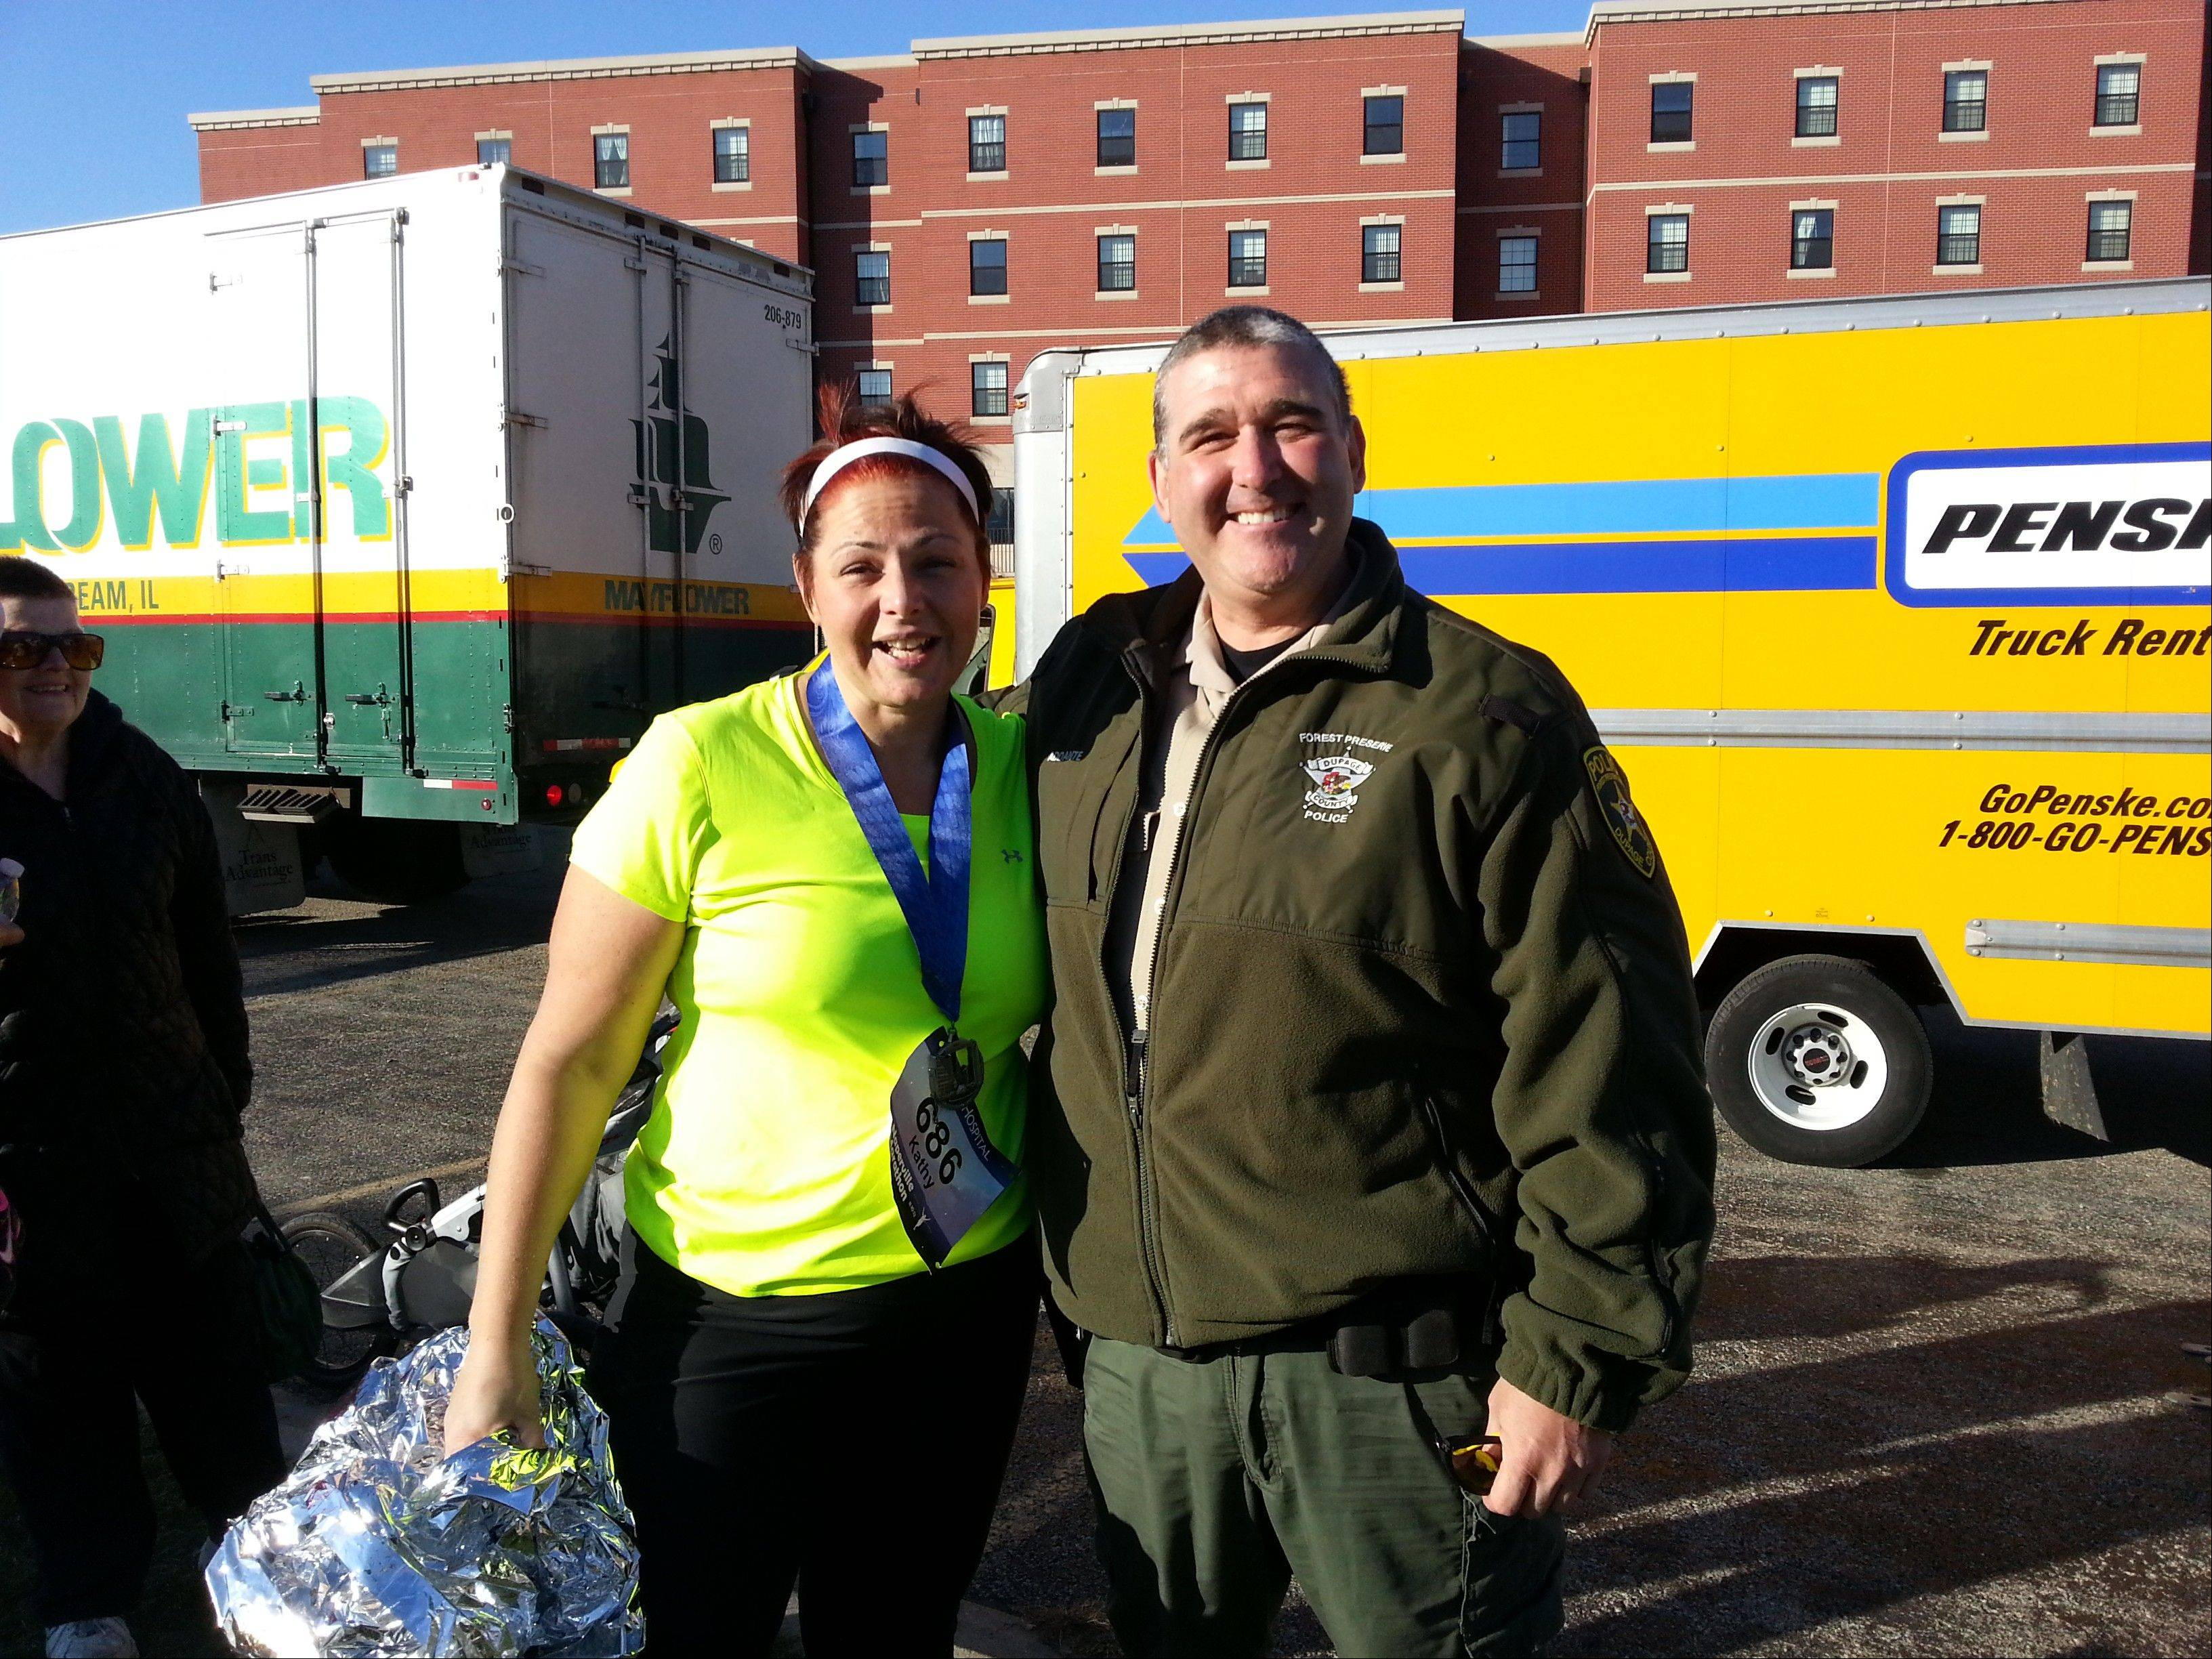 Naperville Marathon runner Kathy Contreras of Aurora smiles for a photo with DuPage County Forest Preserve District police officer Lou Addante after crossing the finish line. Addante was among a group of people who guided Contreras to the finish line Sunday after she became lost.